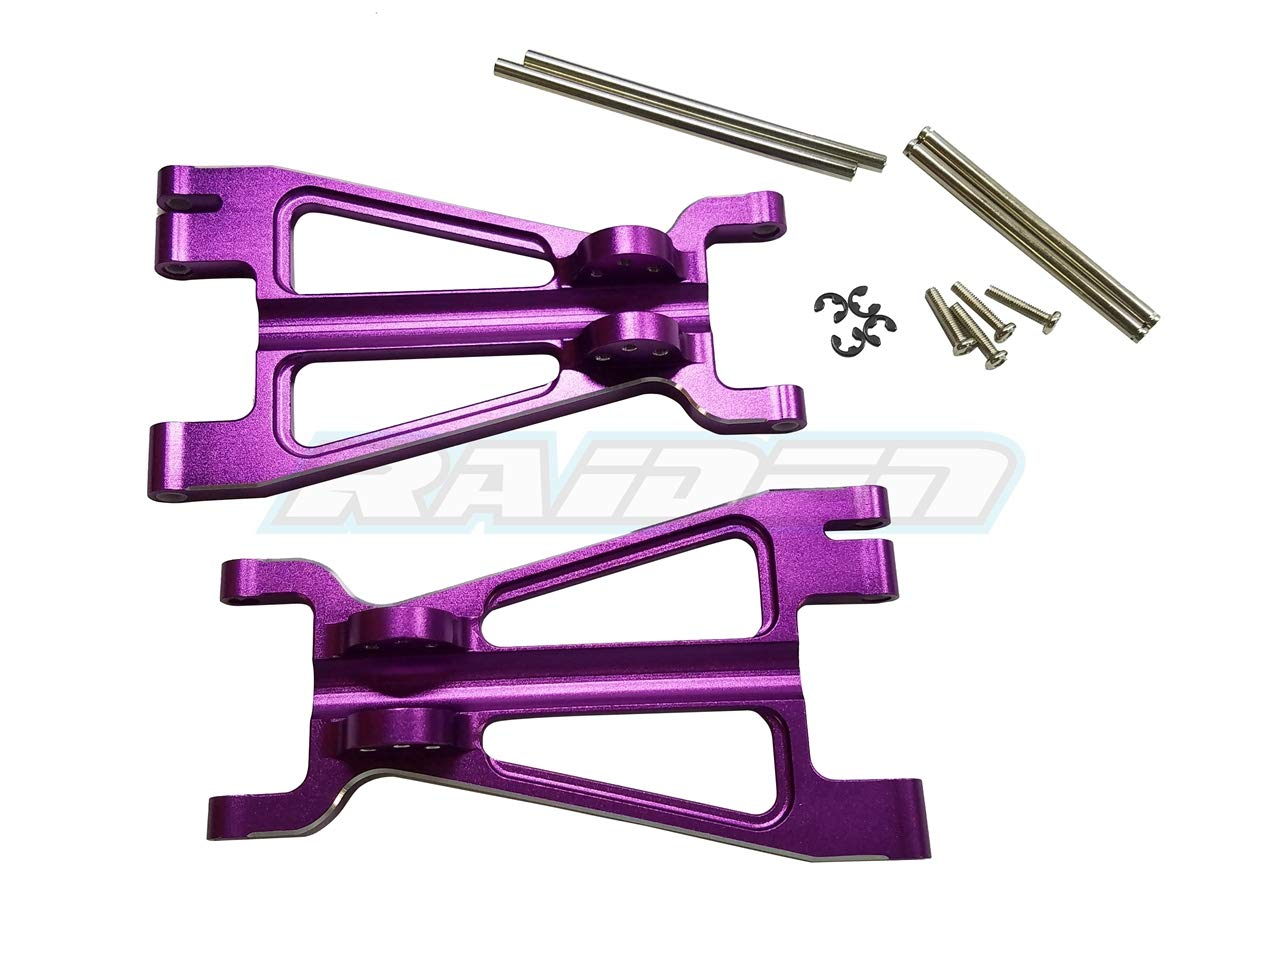 Raidenracing Aluminum Alloy Front / Rear Niedriger Arm for HPI 1/8 Savage Flux 4.6 XL X 2pcs - lila